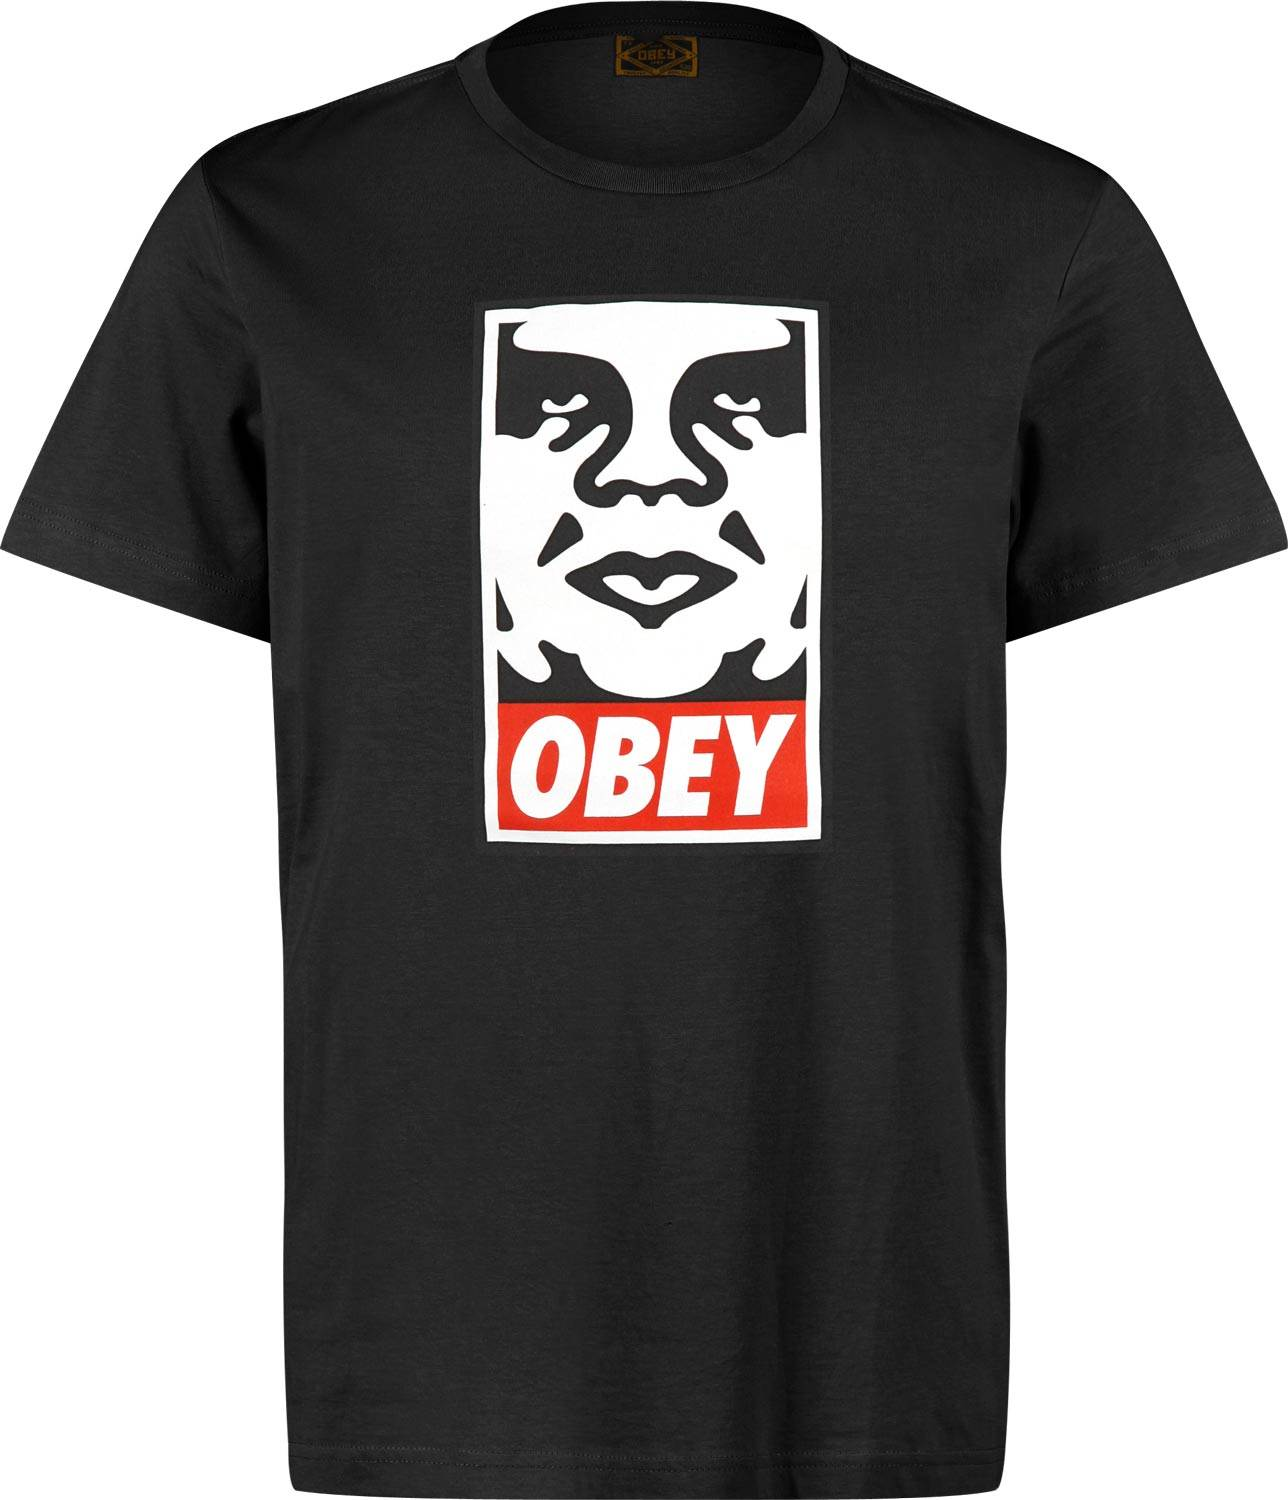 street art, black t-shirt, obey